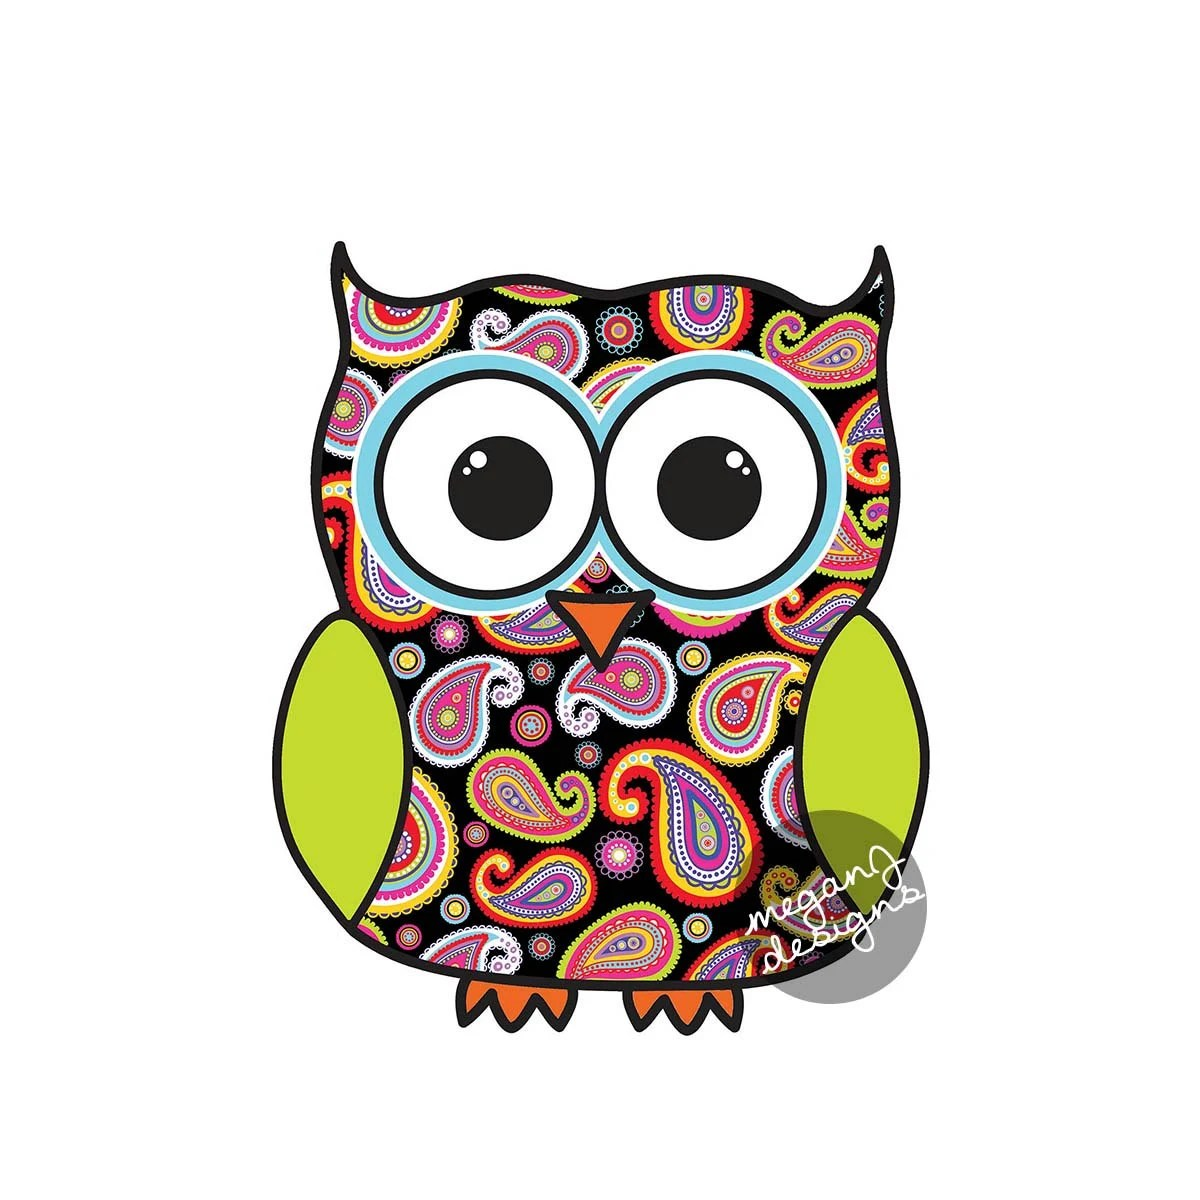 Colorful Pictures Of Owls Black Paisley Owl Car Decal Colorful Cute Owl Bumper Sticker